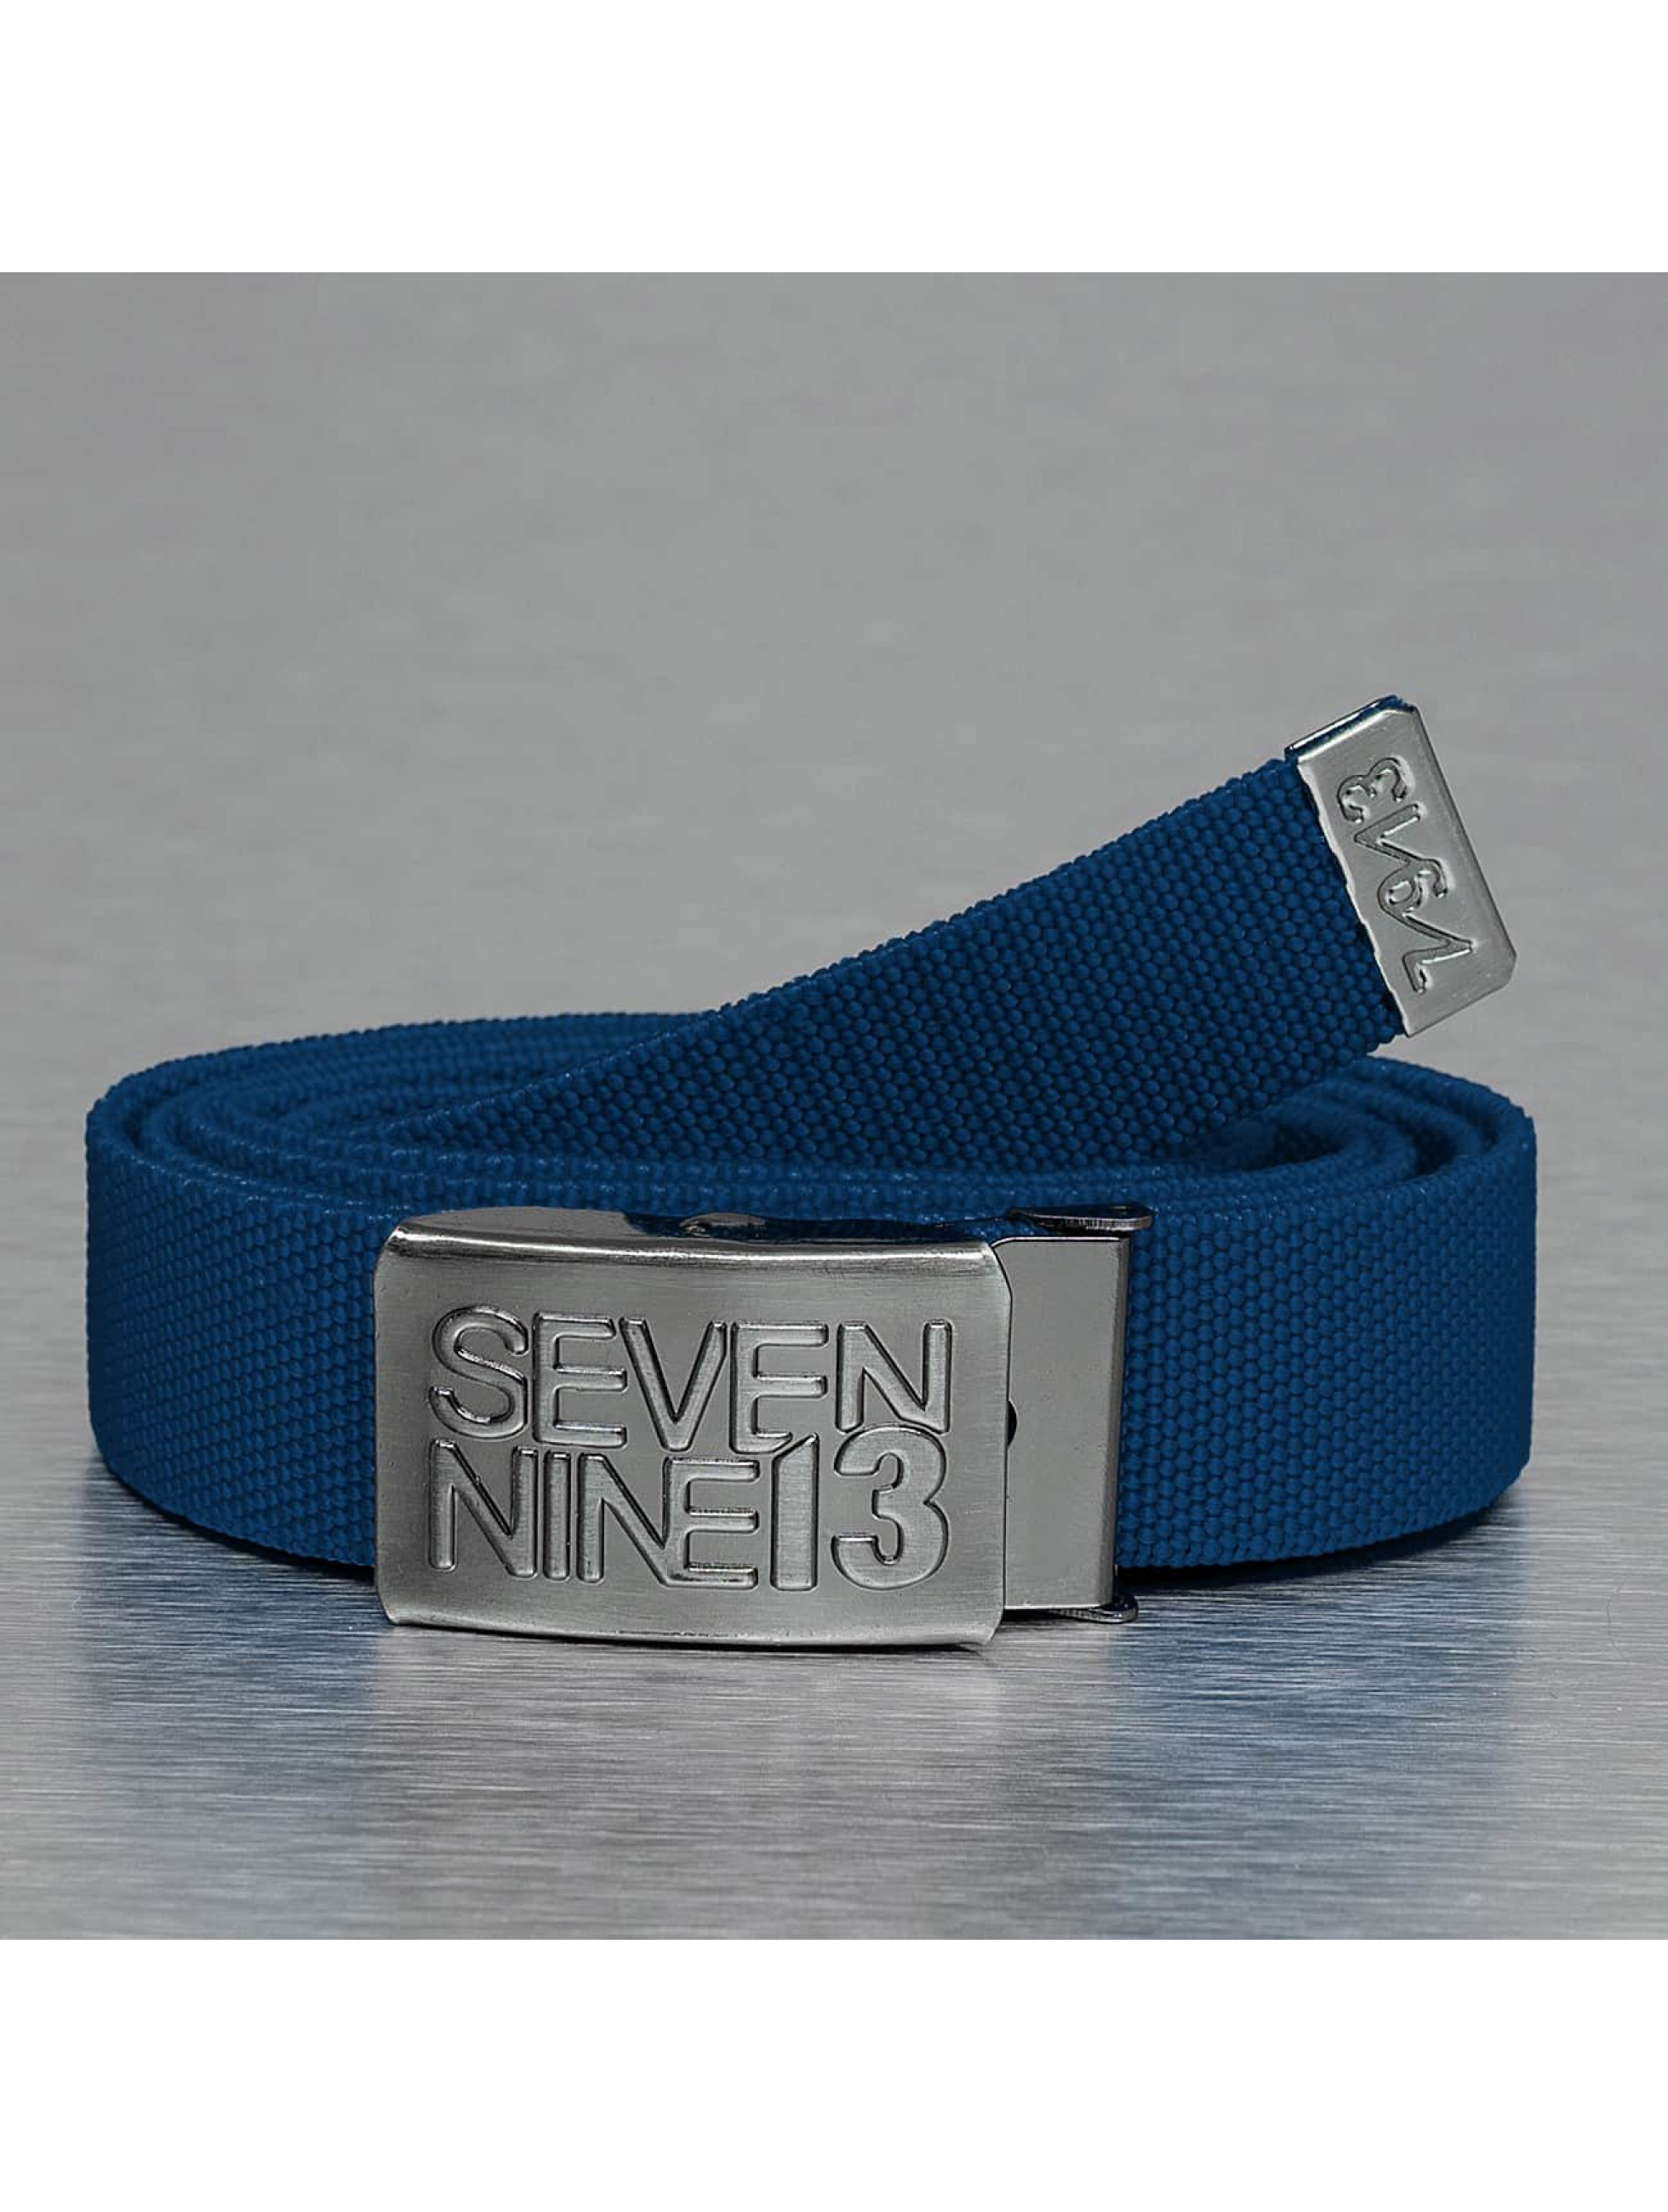 Seven Nine 13 Belt Jaws Stretc blue